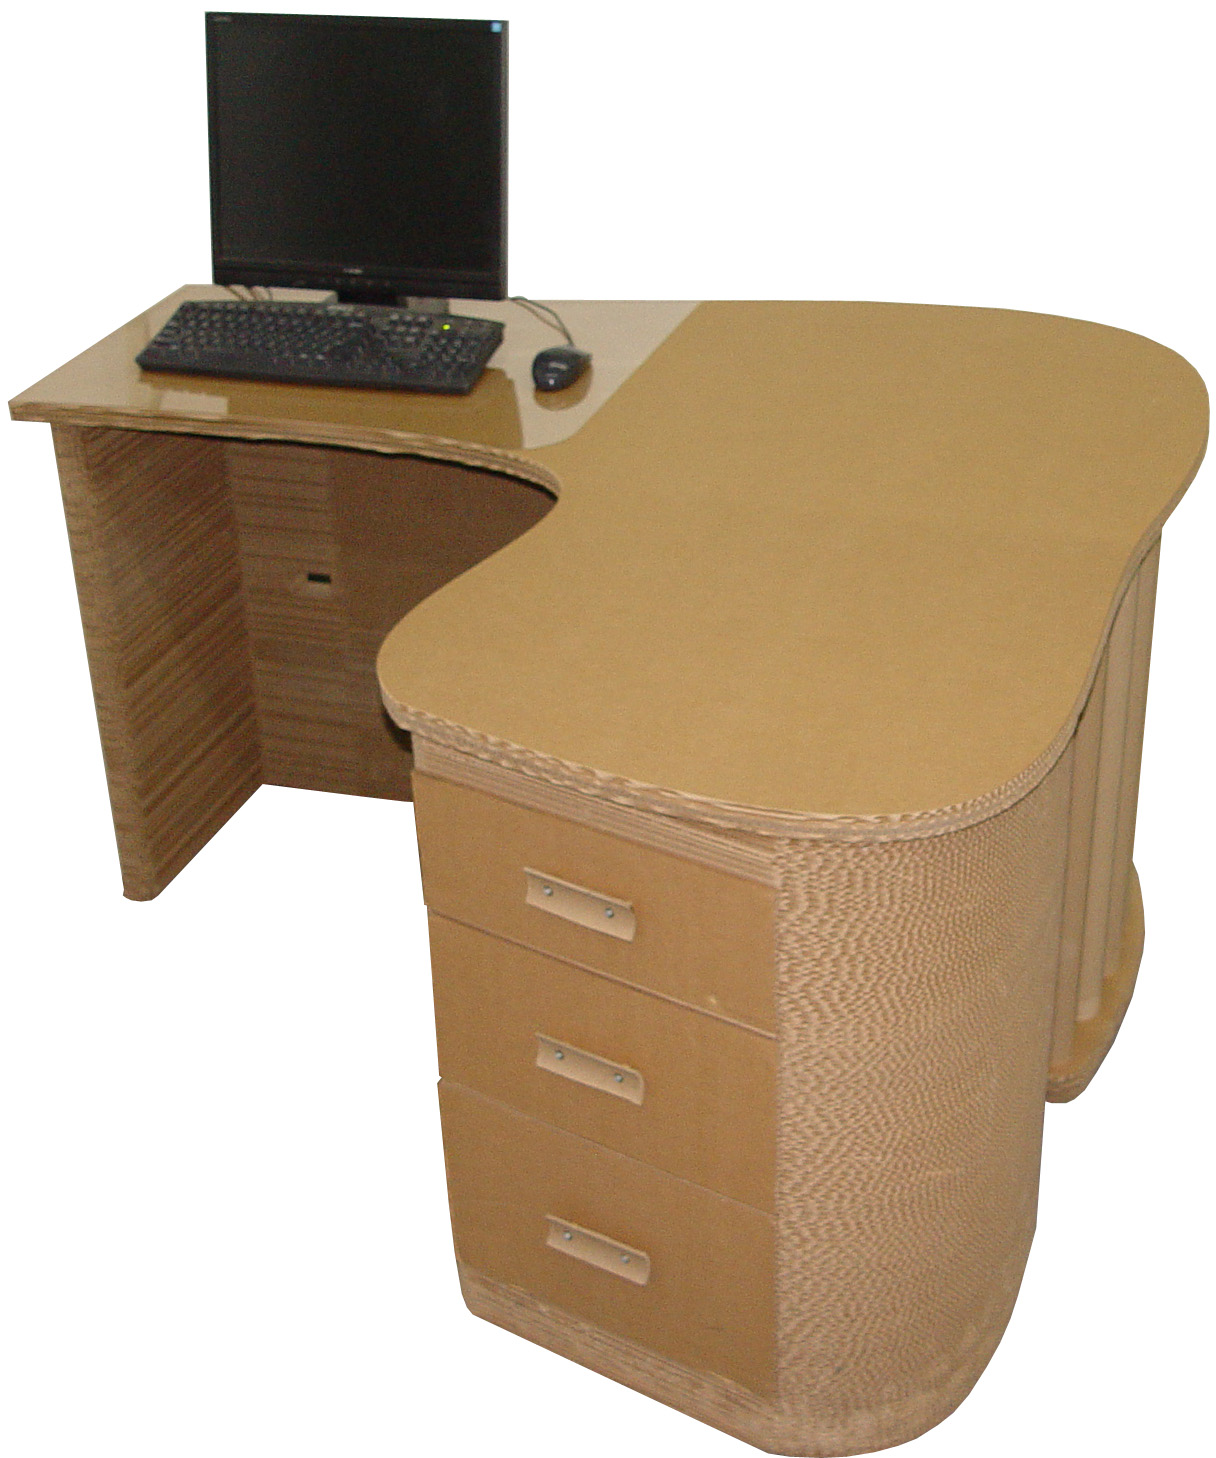 cardboard desk in products promotional shop organizer push